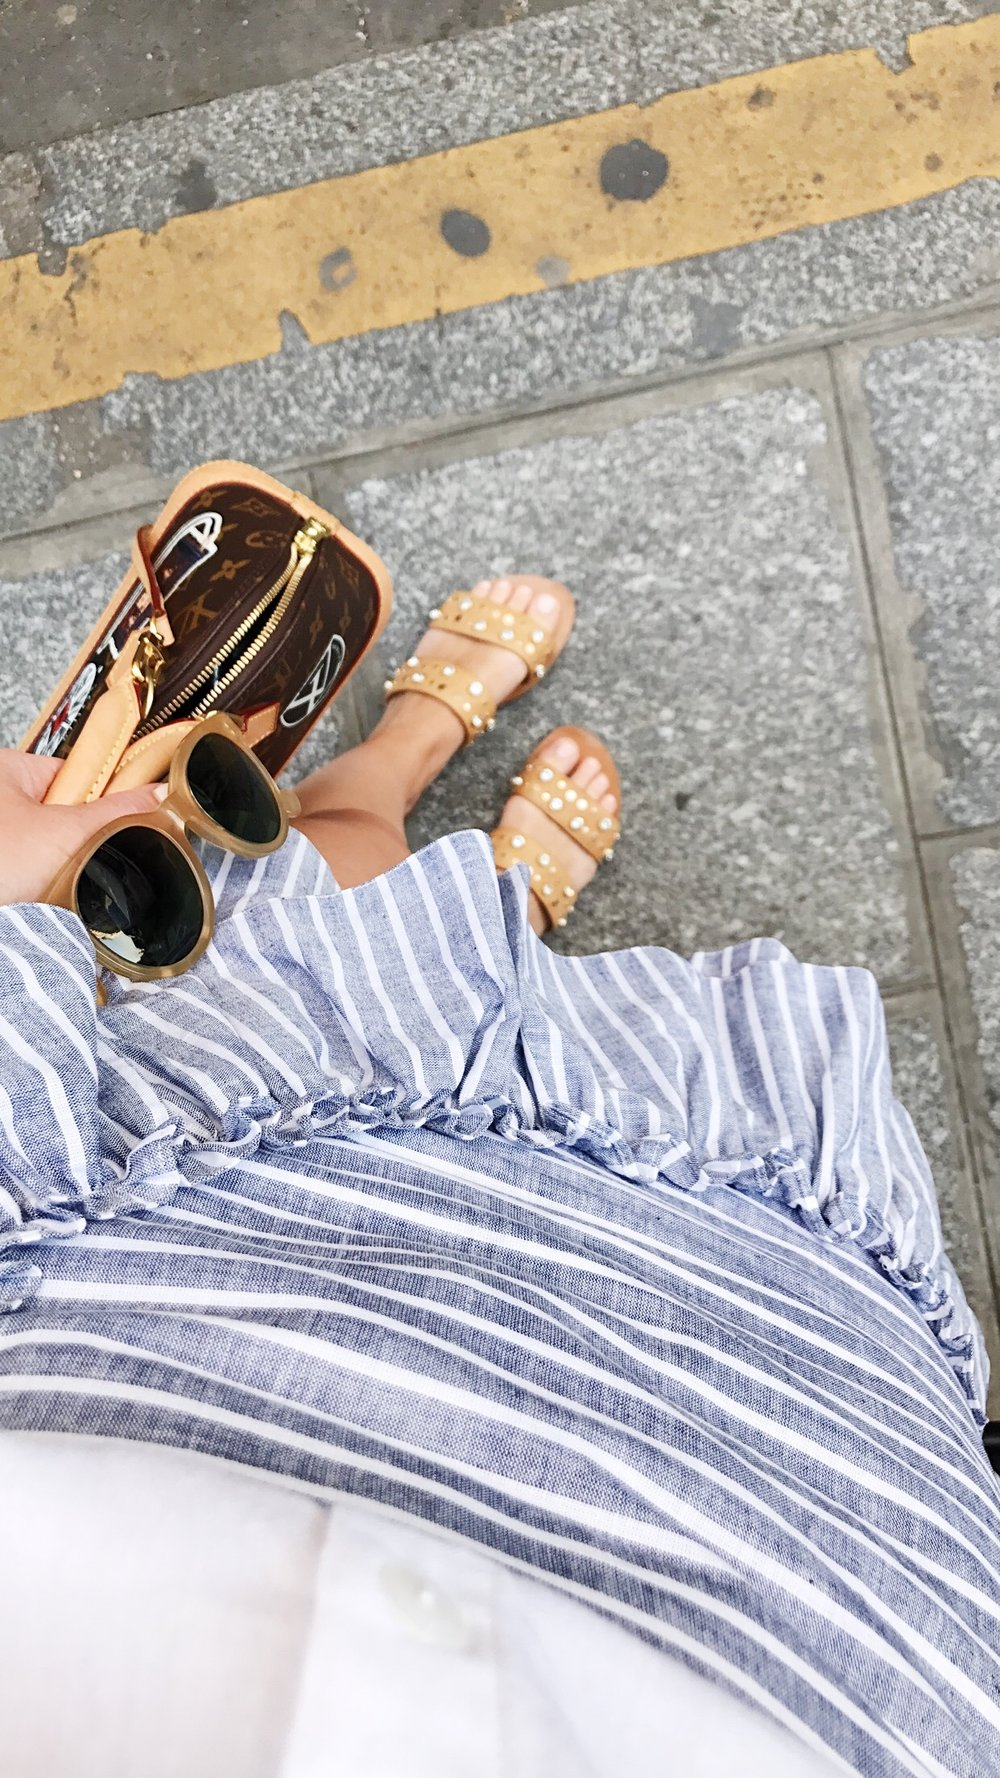 Bag:  Louis Vuitton  Shoes:  & Other Stories  Skirt:  Miss Selfridge  Sunglasses:  Edwardson Eyewear  Top:  Asos